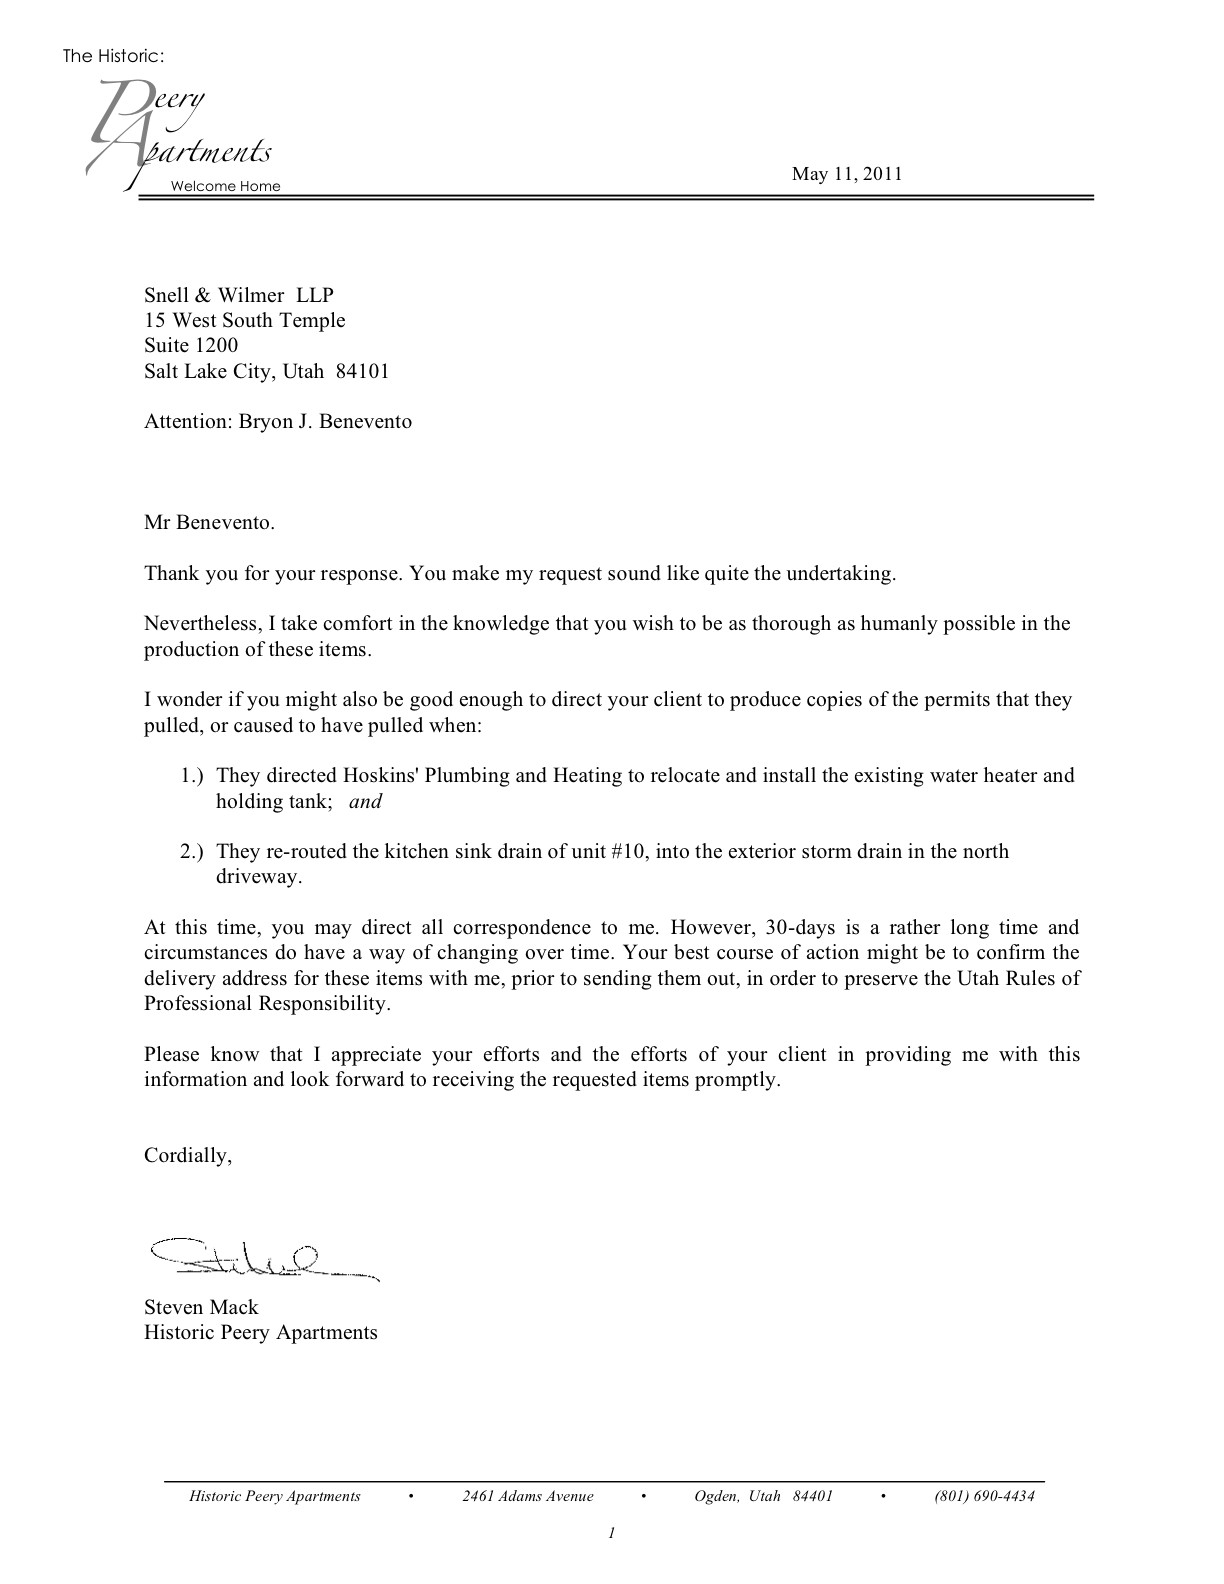 Sample Legal Letter Format | Cease And Desist Letter Breach Of Contract Template Samples Letter